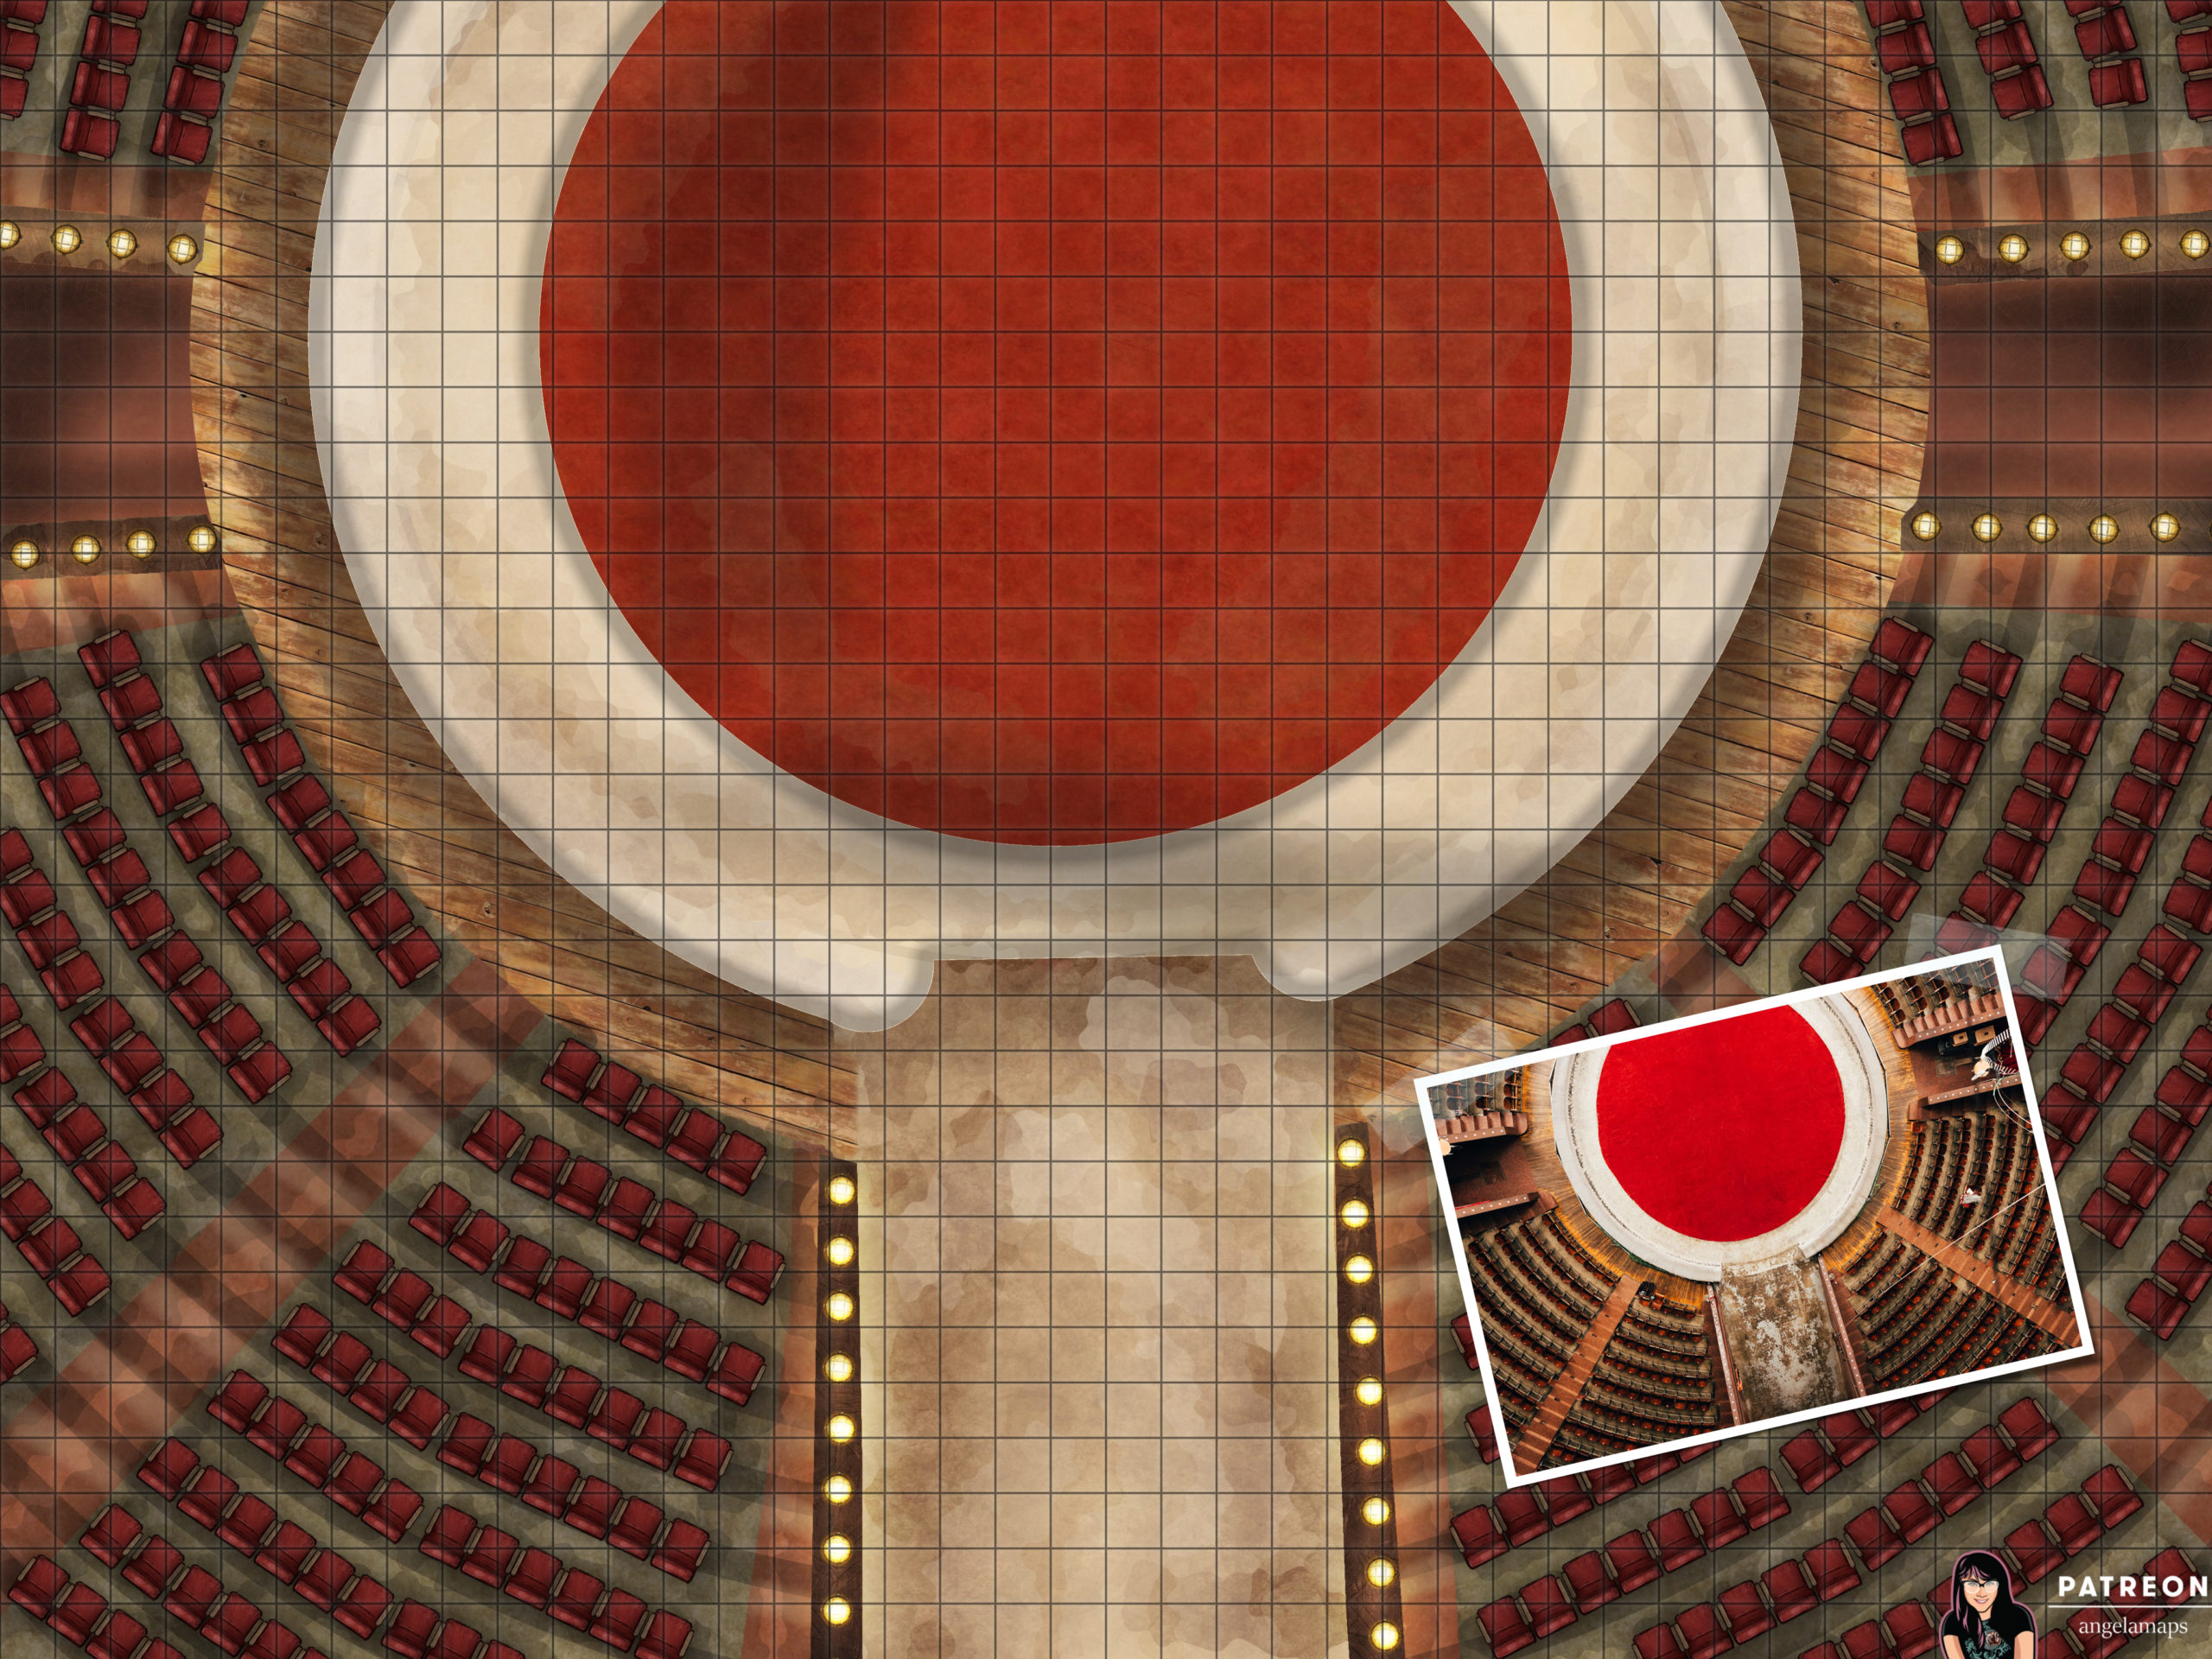 Circus or arena battle map encounter for TTRPGs such as D&D or Pathfinder